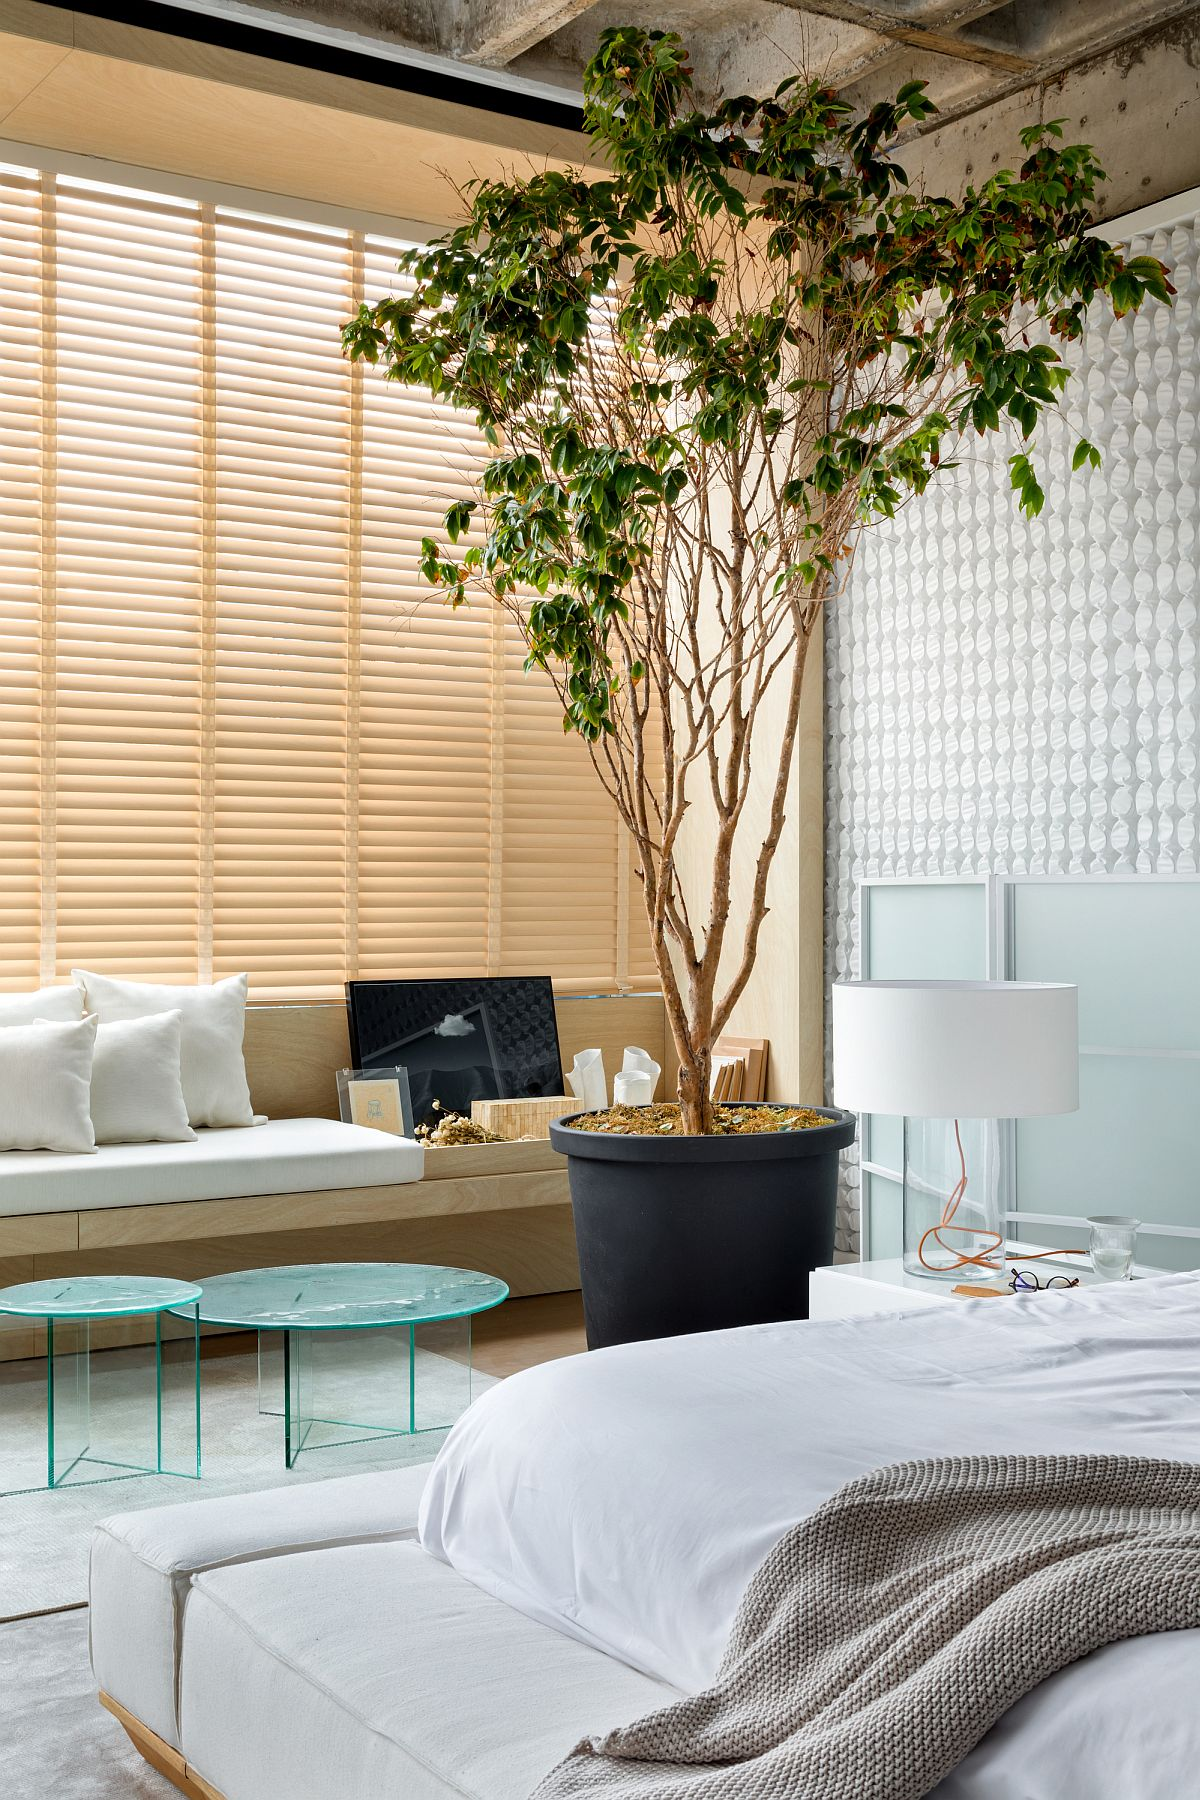 Windows-screens-and-a-selection-of-modern-decor-specially-curated-for-the-bedroom-make-it-a-modern-haven-72877